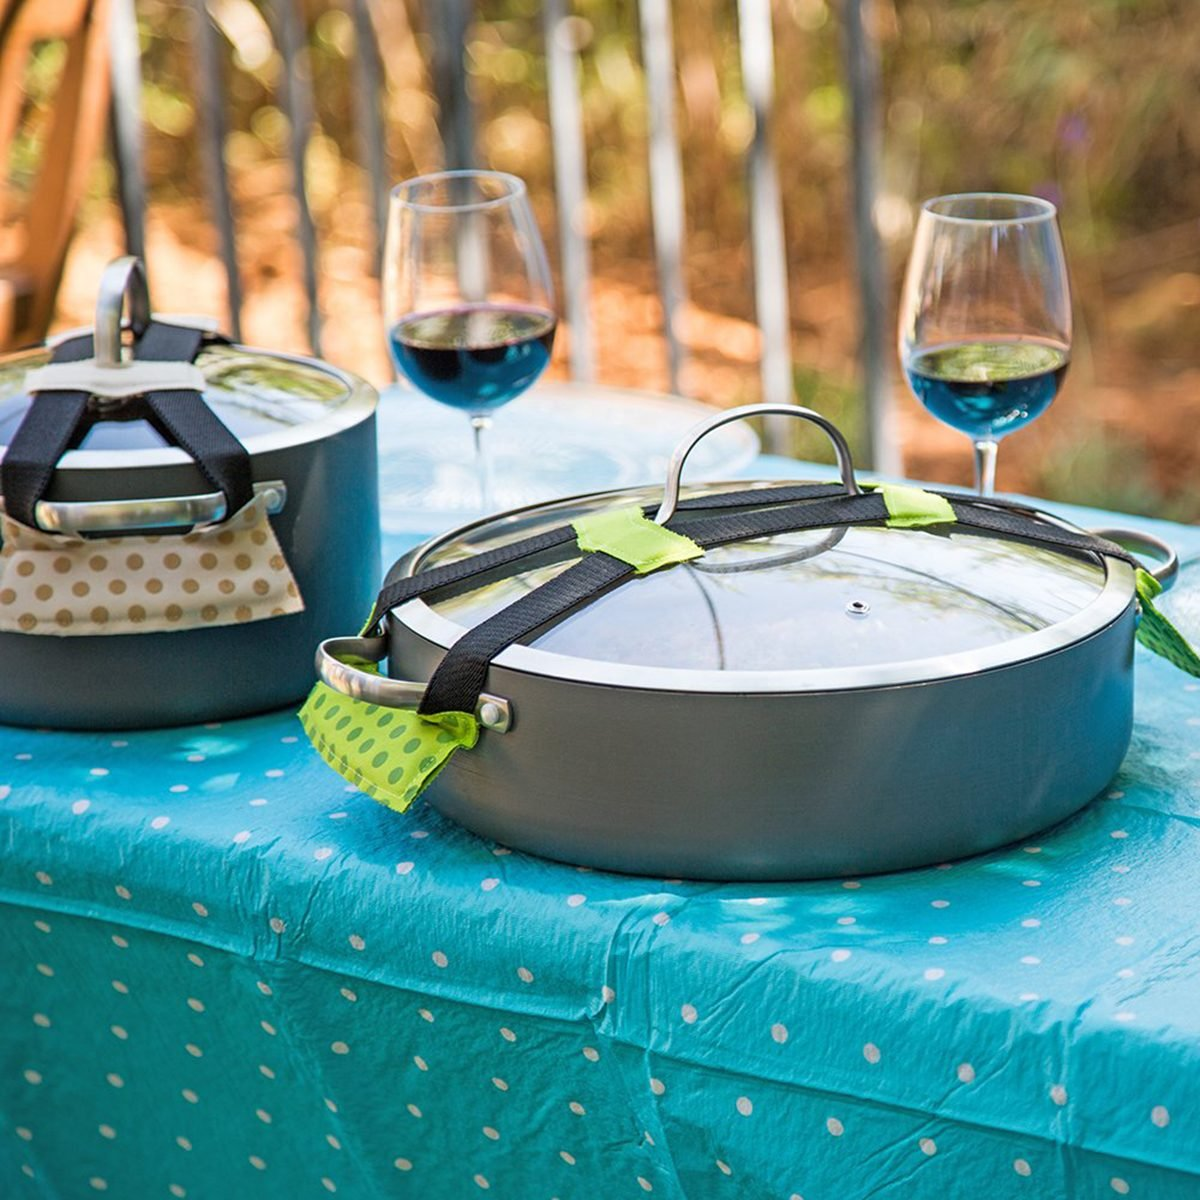 10 Unique Slow Cooker Accessories You Didn't Know You Needed